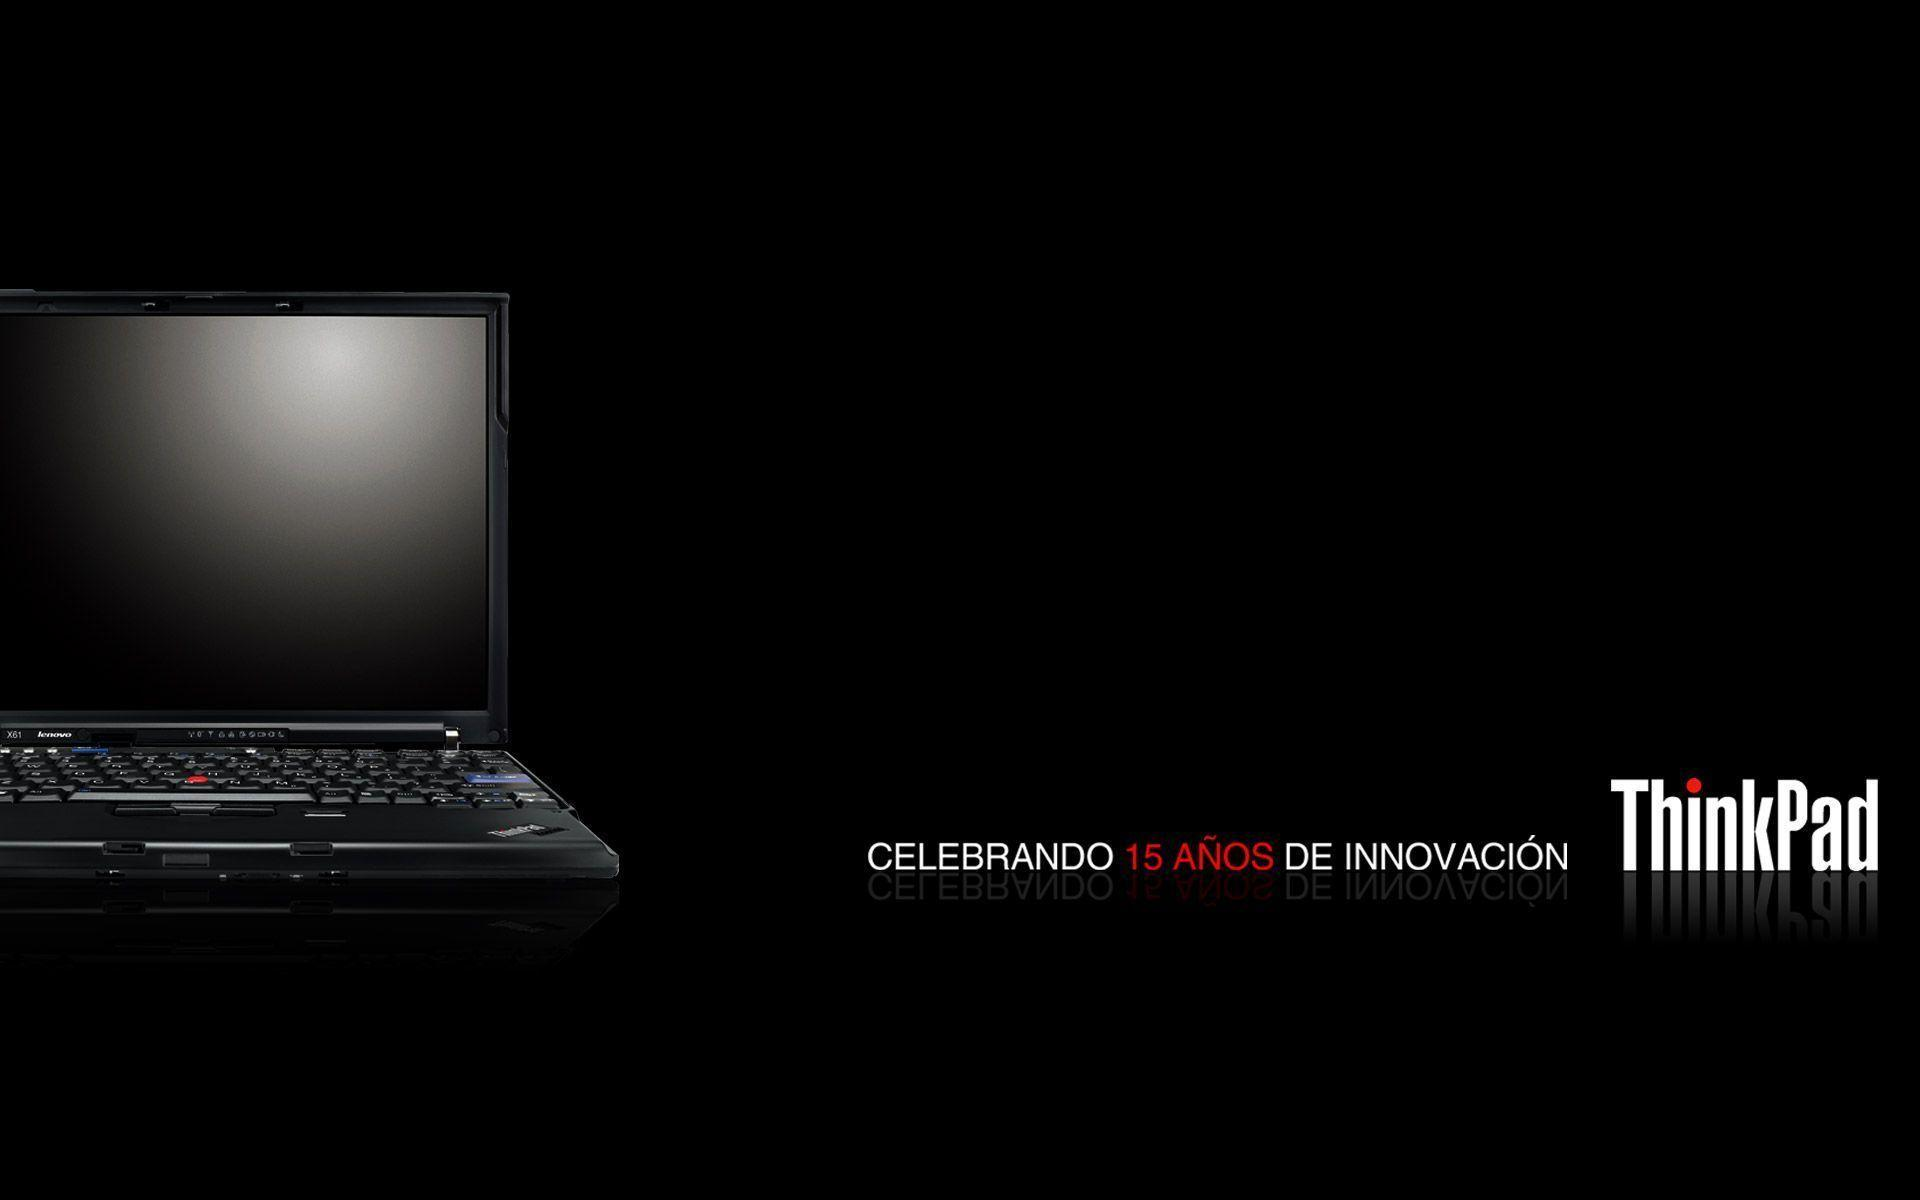 Lenovo ThinkPad Wallpapers - Wallpaper Cave